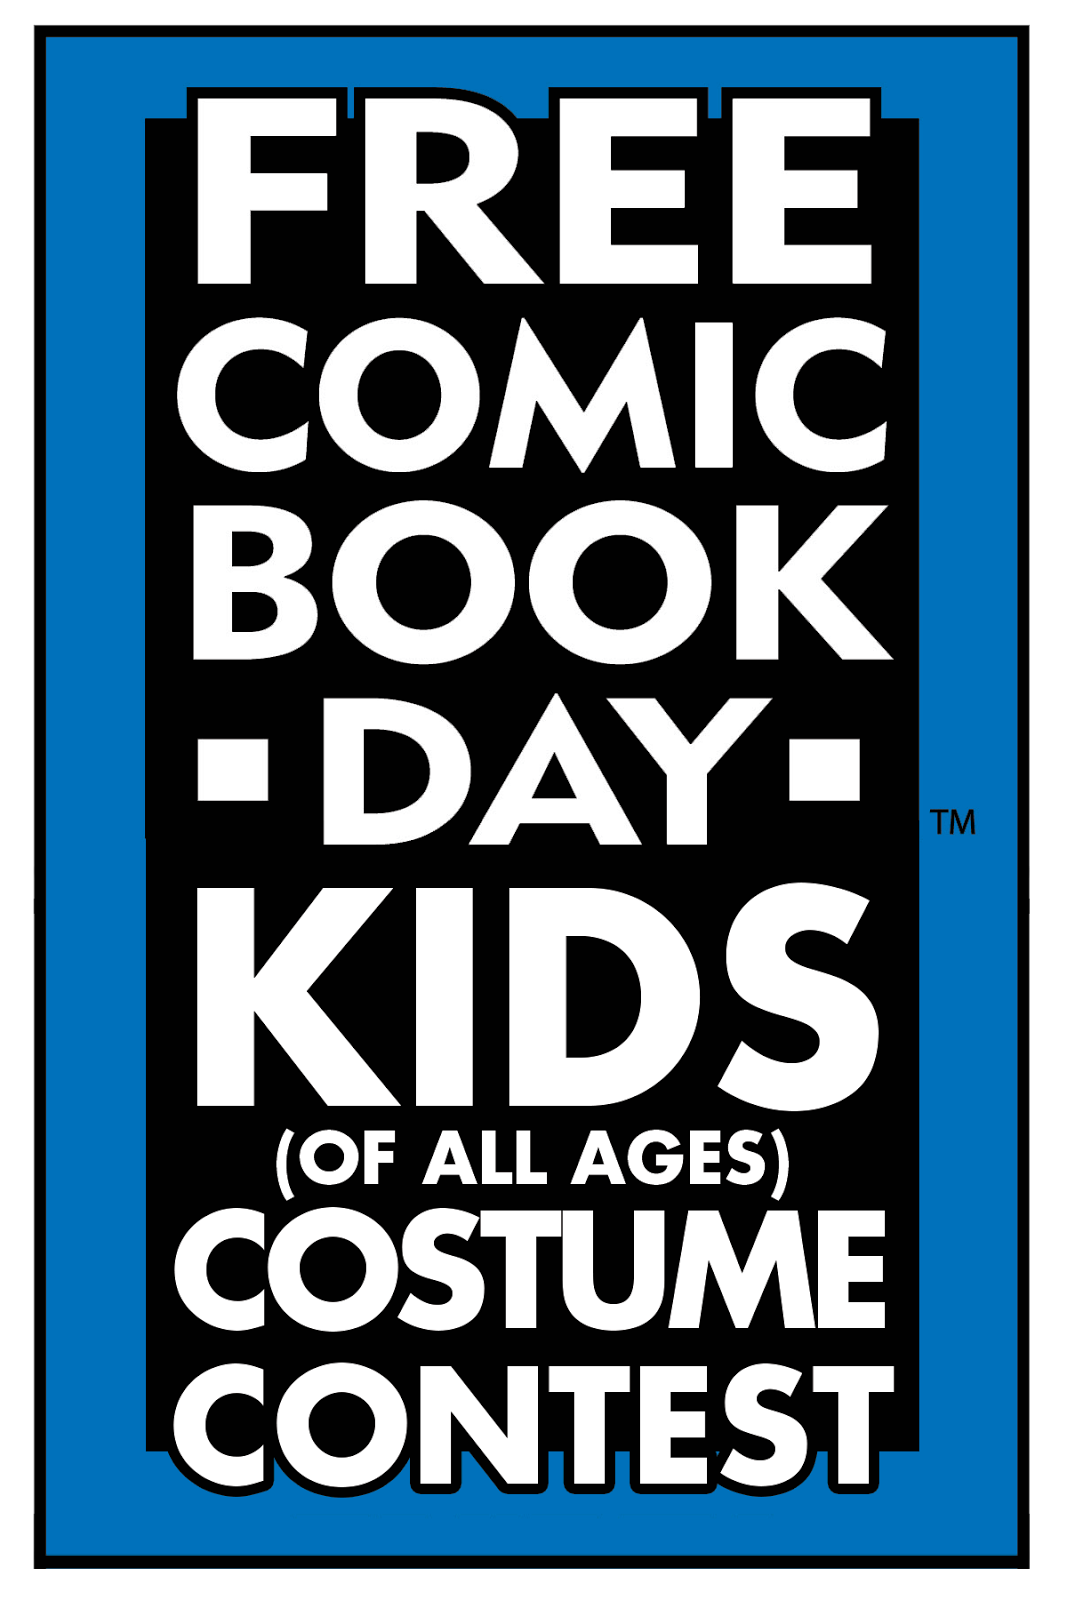 The Doctor Knows: Free Comic Book Day 2017 is coming soon!